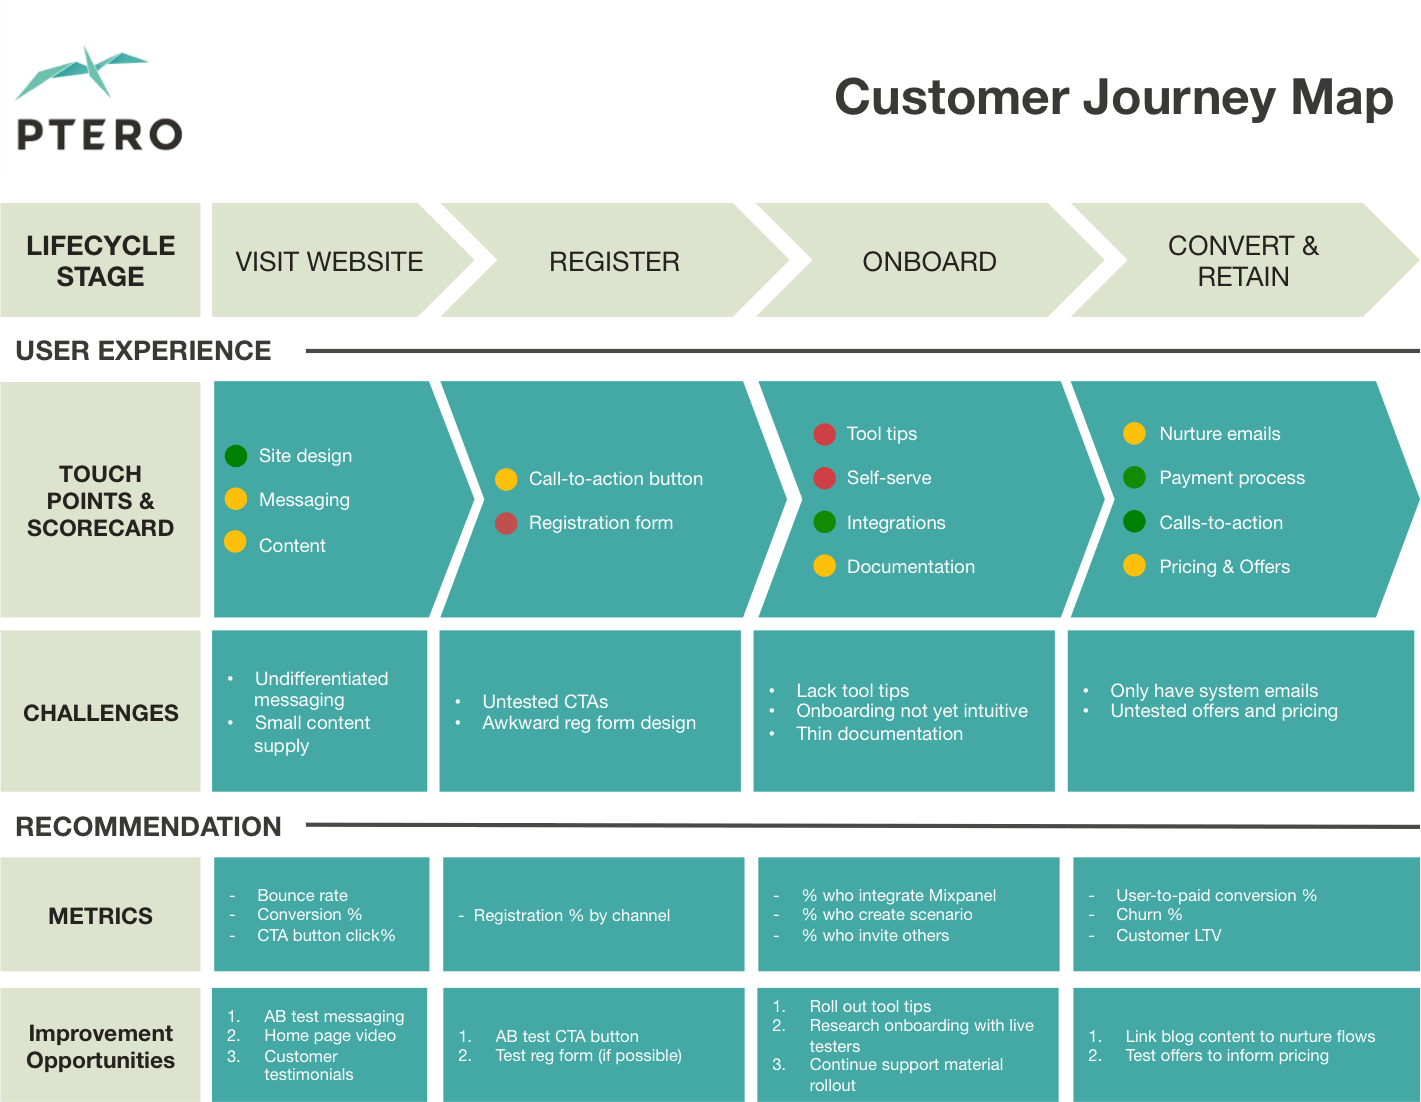 ptero customer journey map